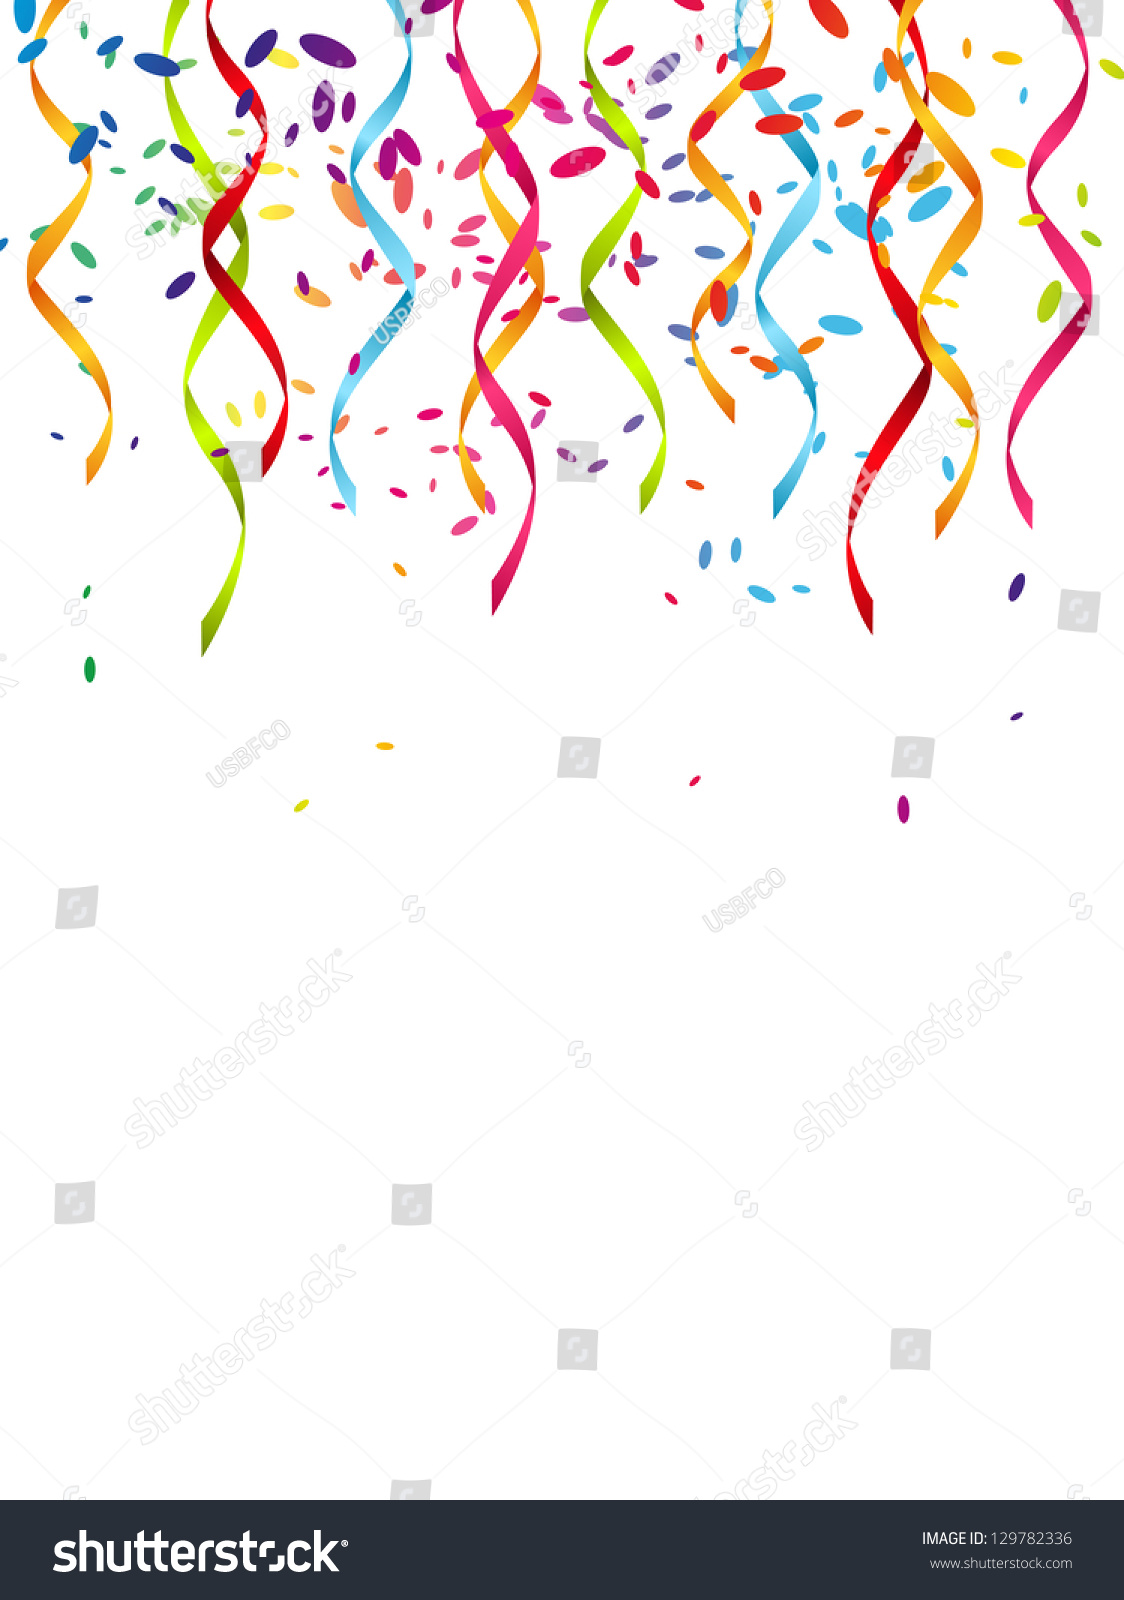 royalty free party background with place for text 129782336 stock